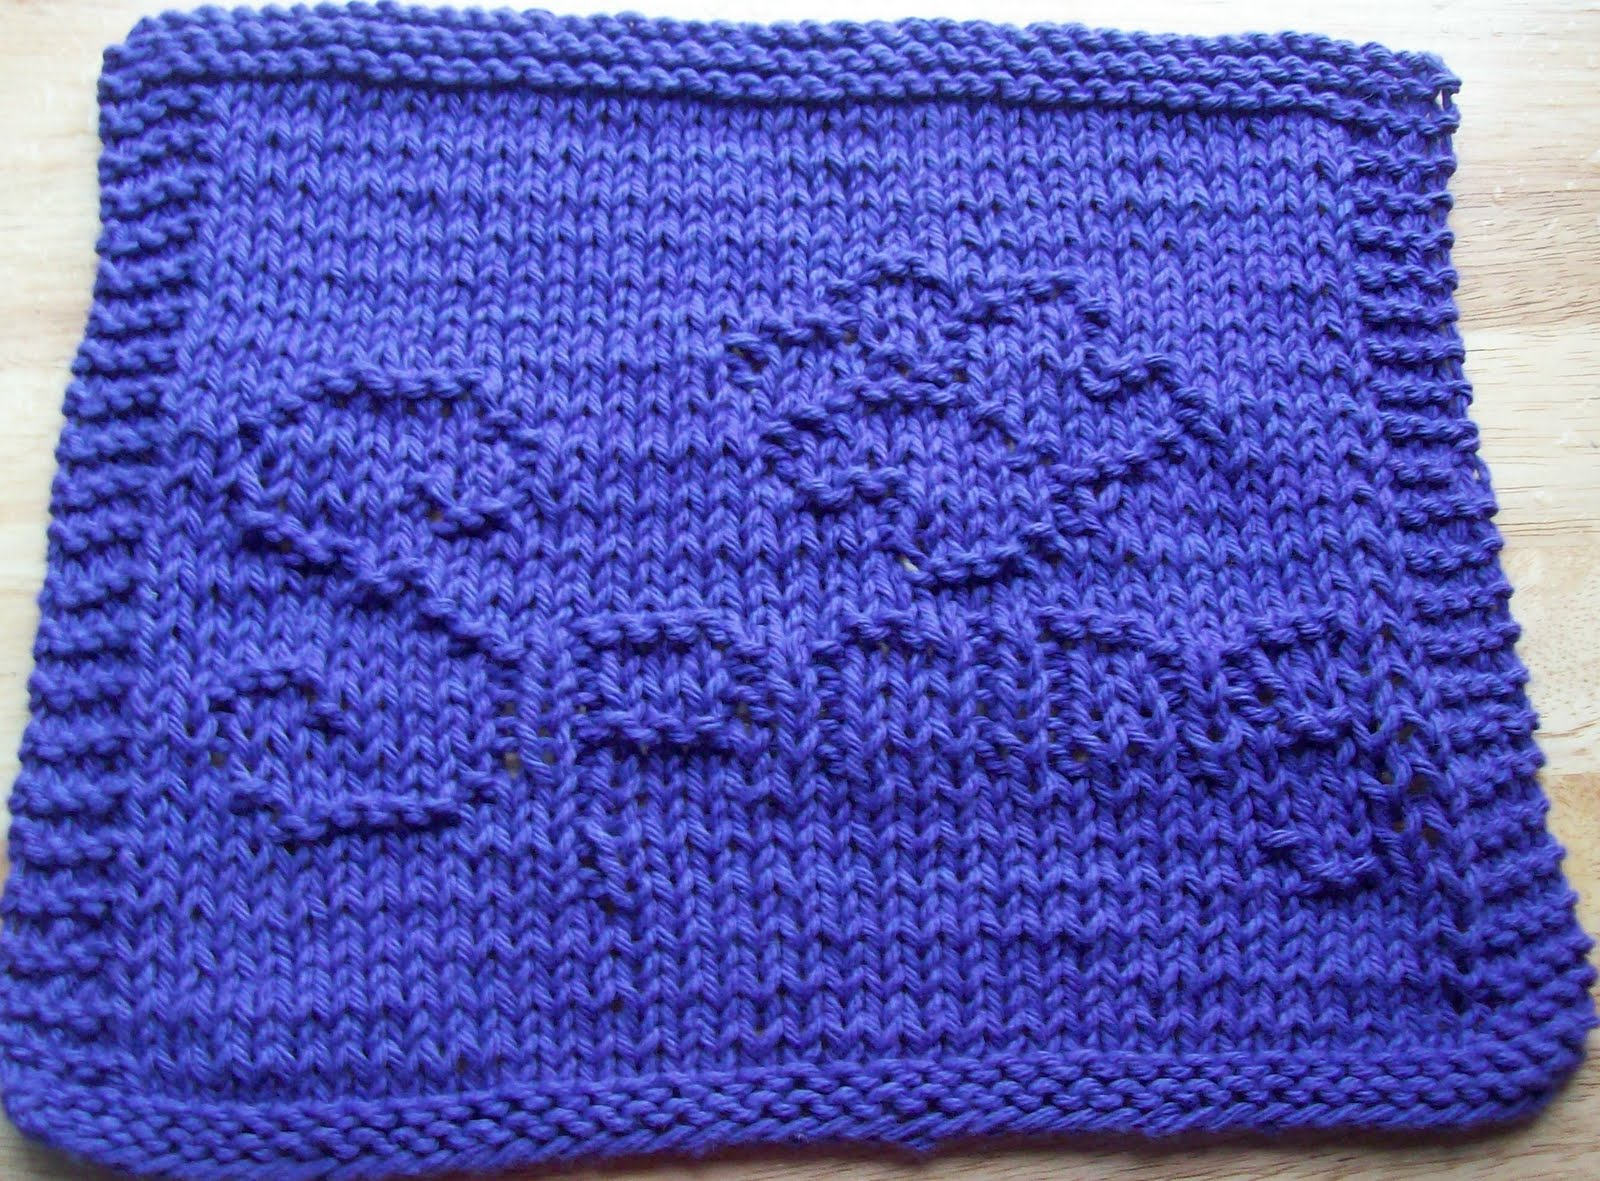 Free Knitting Pattern Butterfly Dishcloth : DigKnitty Designs: Spring With Butterfly Knit Dishcloth Pattern